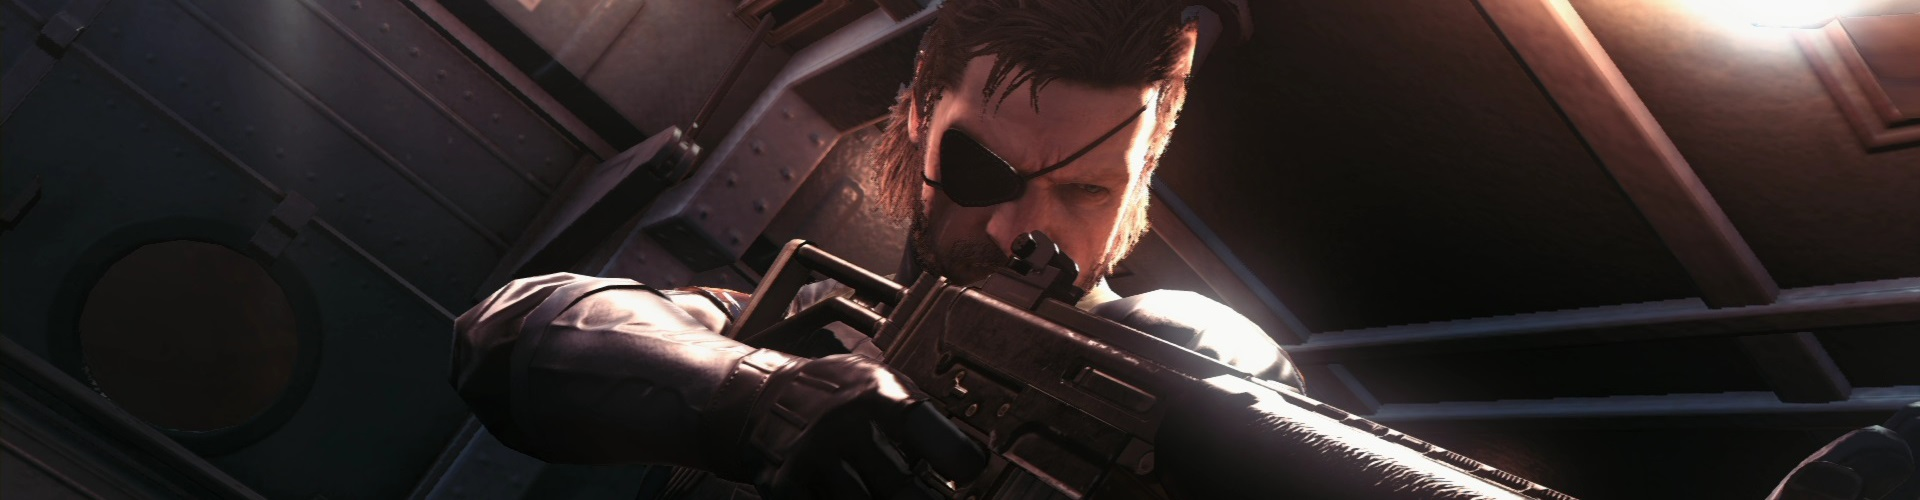 Metal Gear Solid 5: Ground Zeroes - Vorteile der PC-Version mit Screenshots